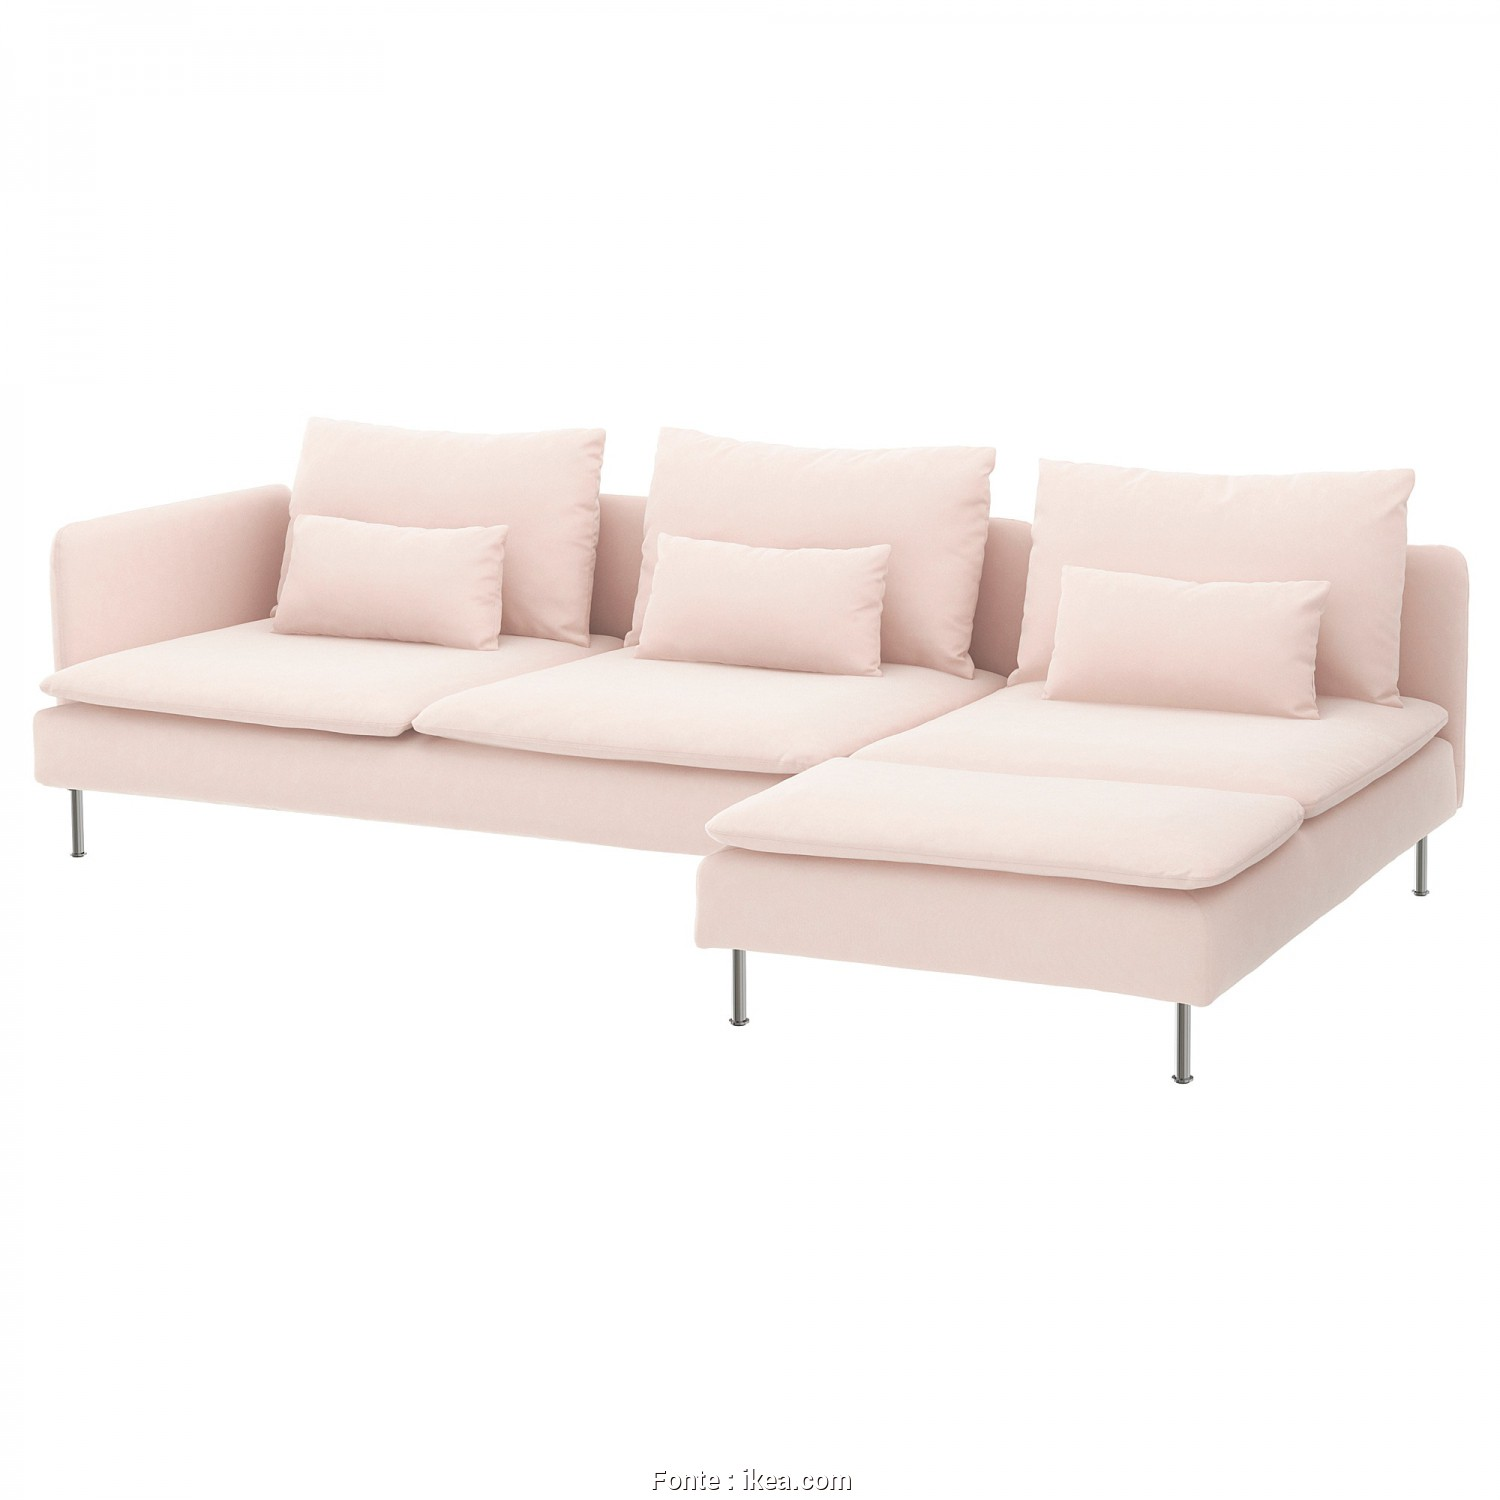 Ikea Klippan 4-Sits, Divertente SÖDERHAMN 4-Seat Sofa, With Chaise Longue, Open End, Samsta Light Pink